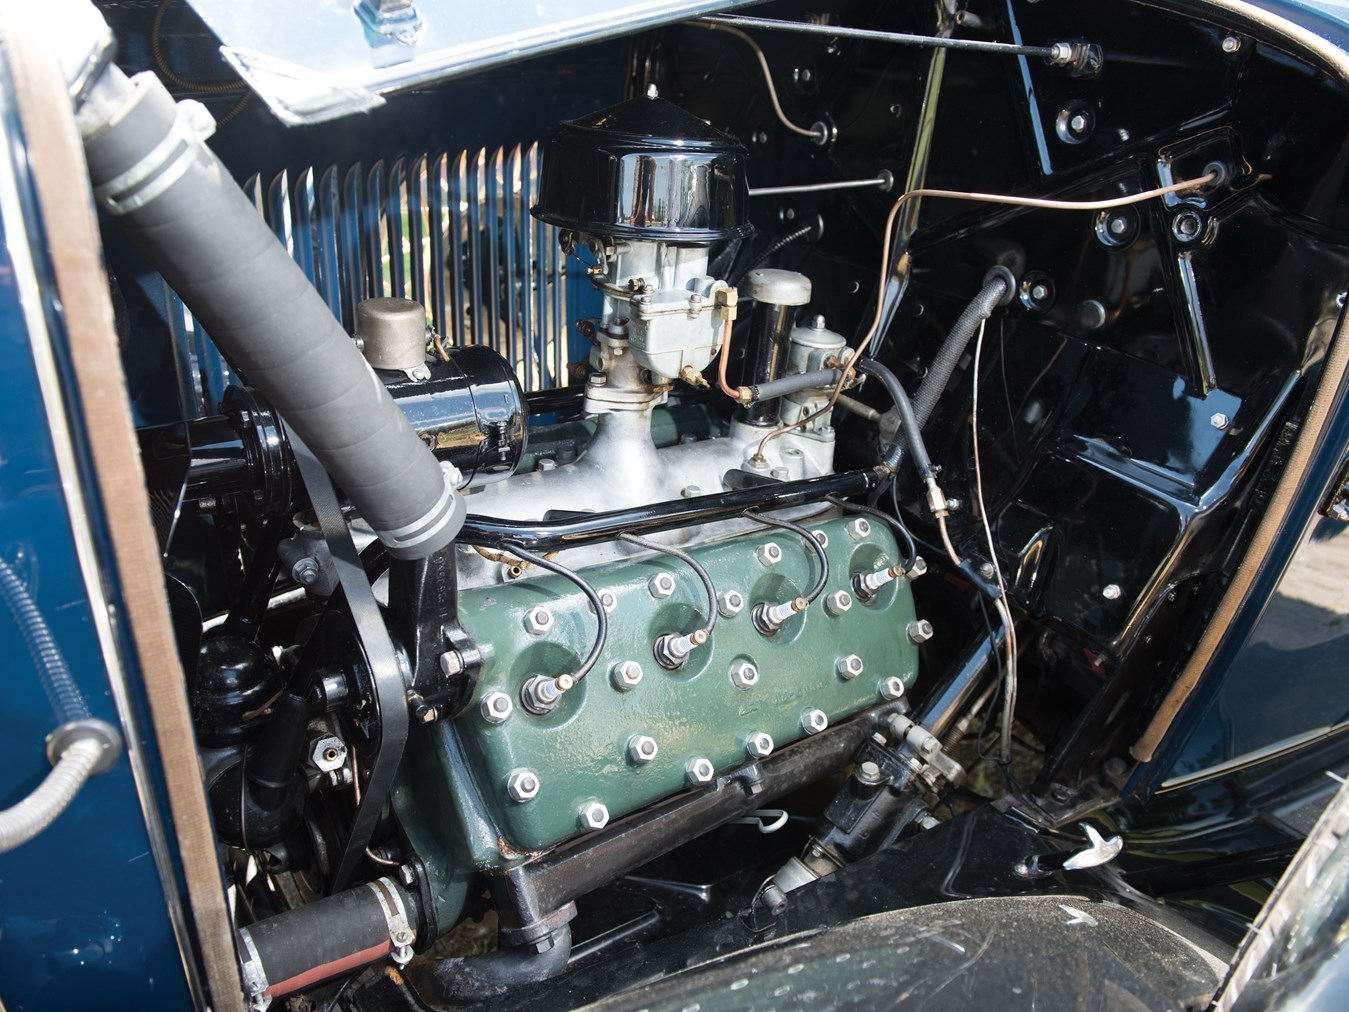 The final product, the L head V8 Ford engine had numerous design faults that would need to be rectified over its years of production. (Picture courtesy RM Sotheby's).